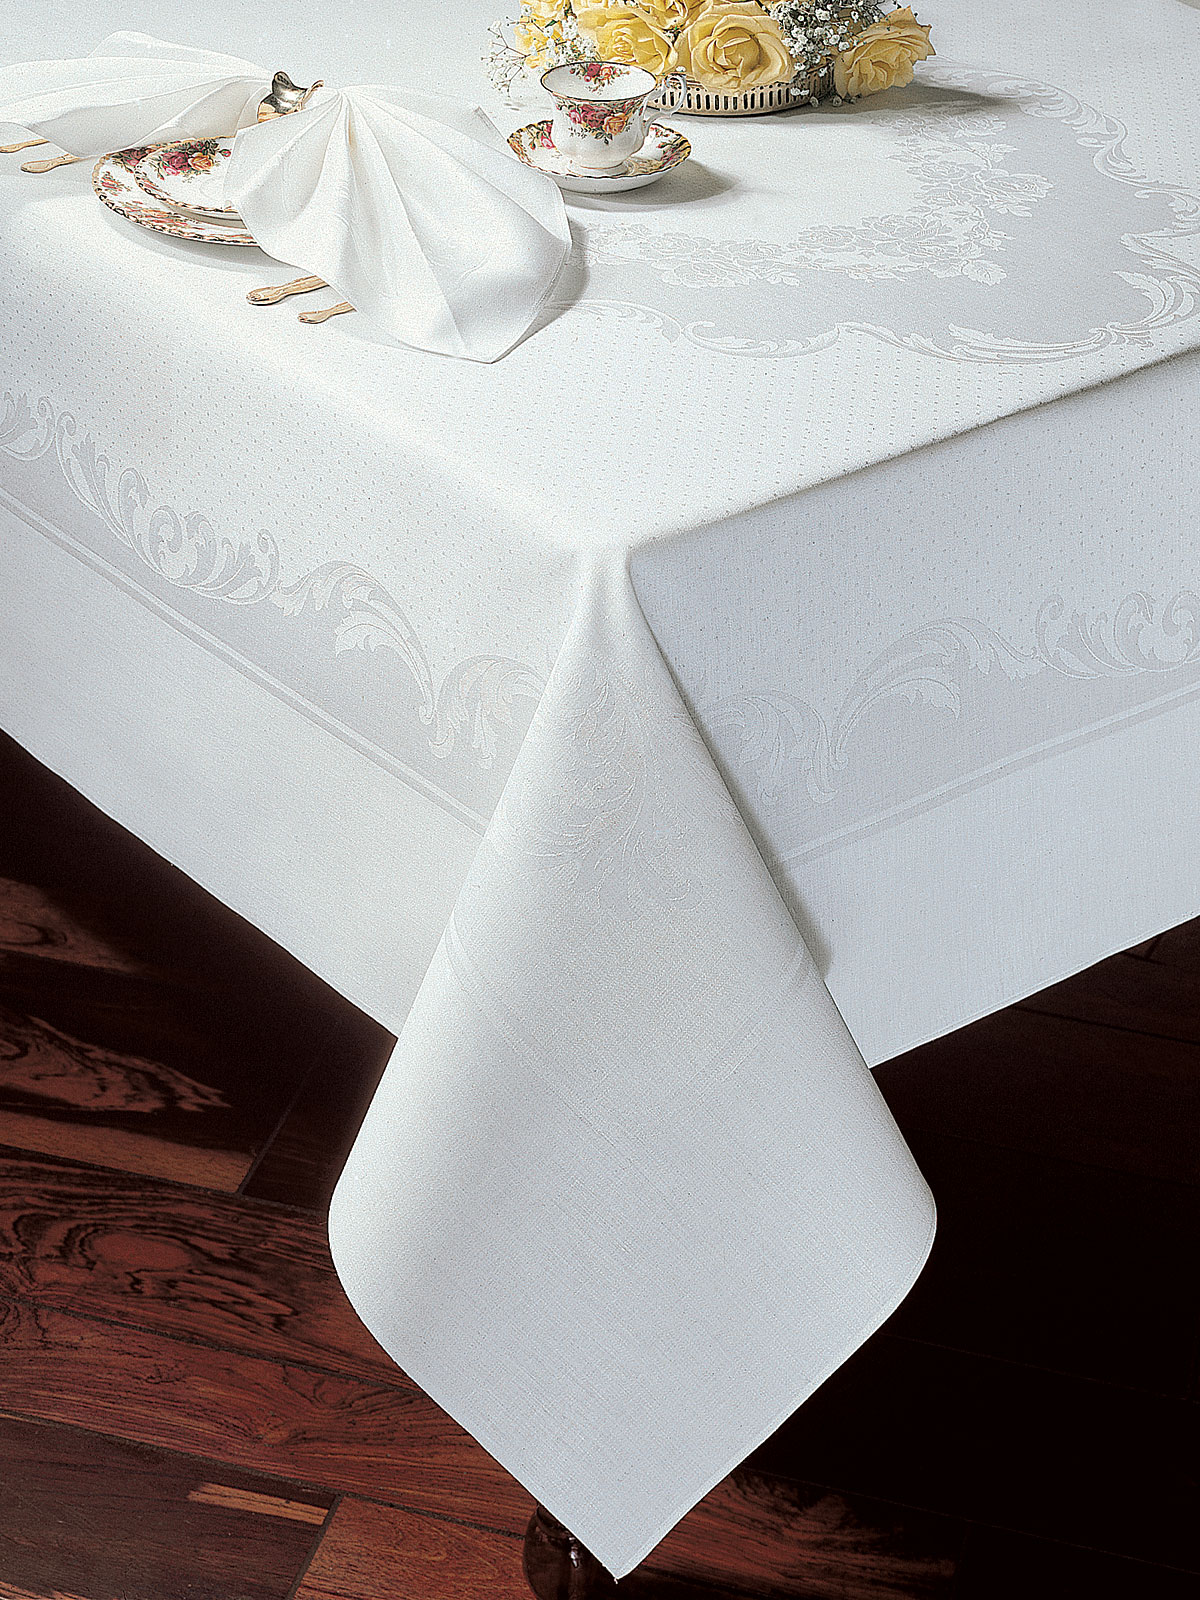 Floral Essence Fine Table Linens Schweitzer Linen